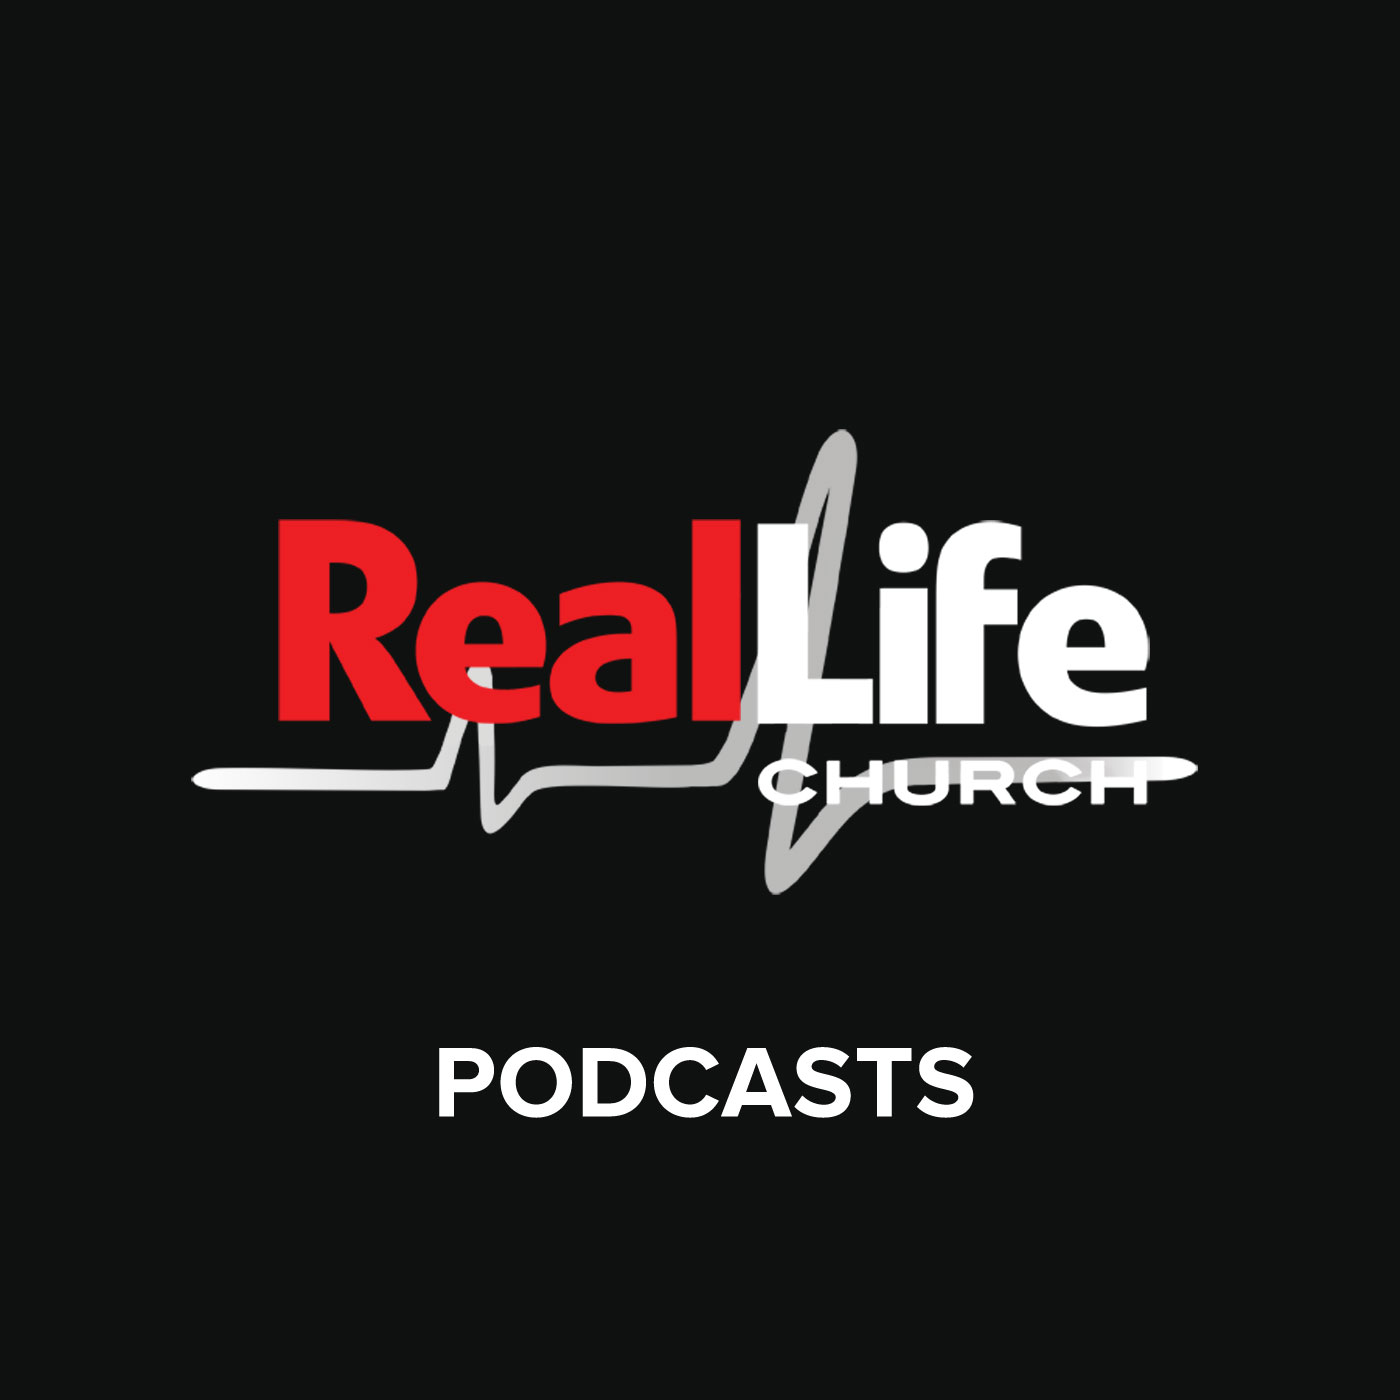 Podcasts - Real Life Church